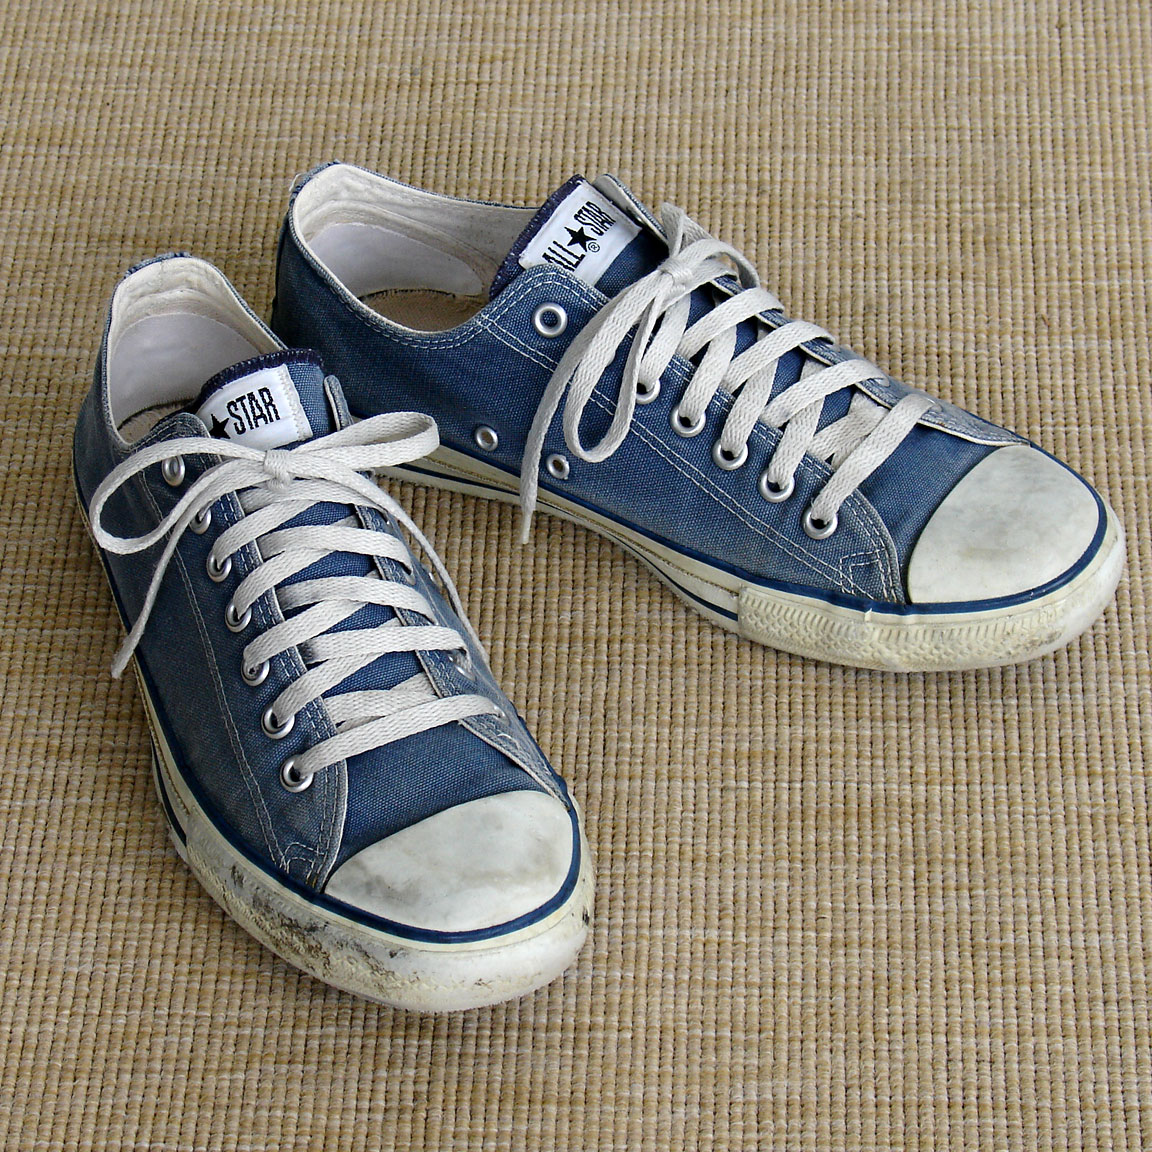 591d7ae430 Vintage American-made classic blue Converse All Star Chuck Taylor shoes for  sale at http